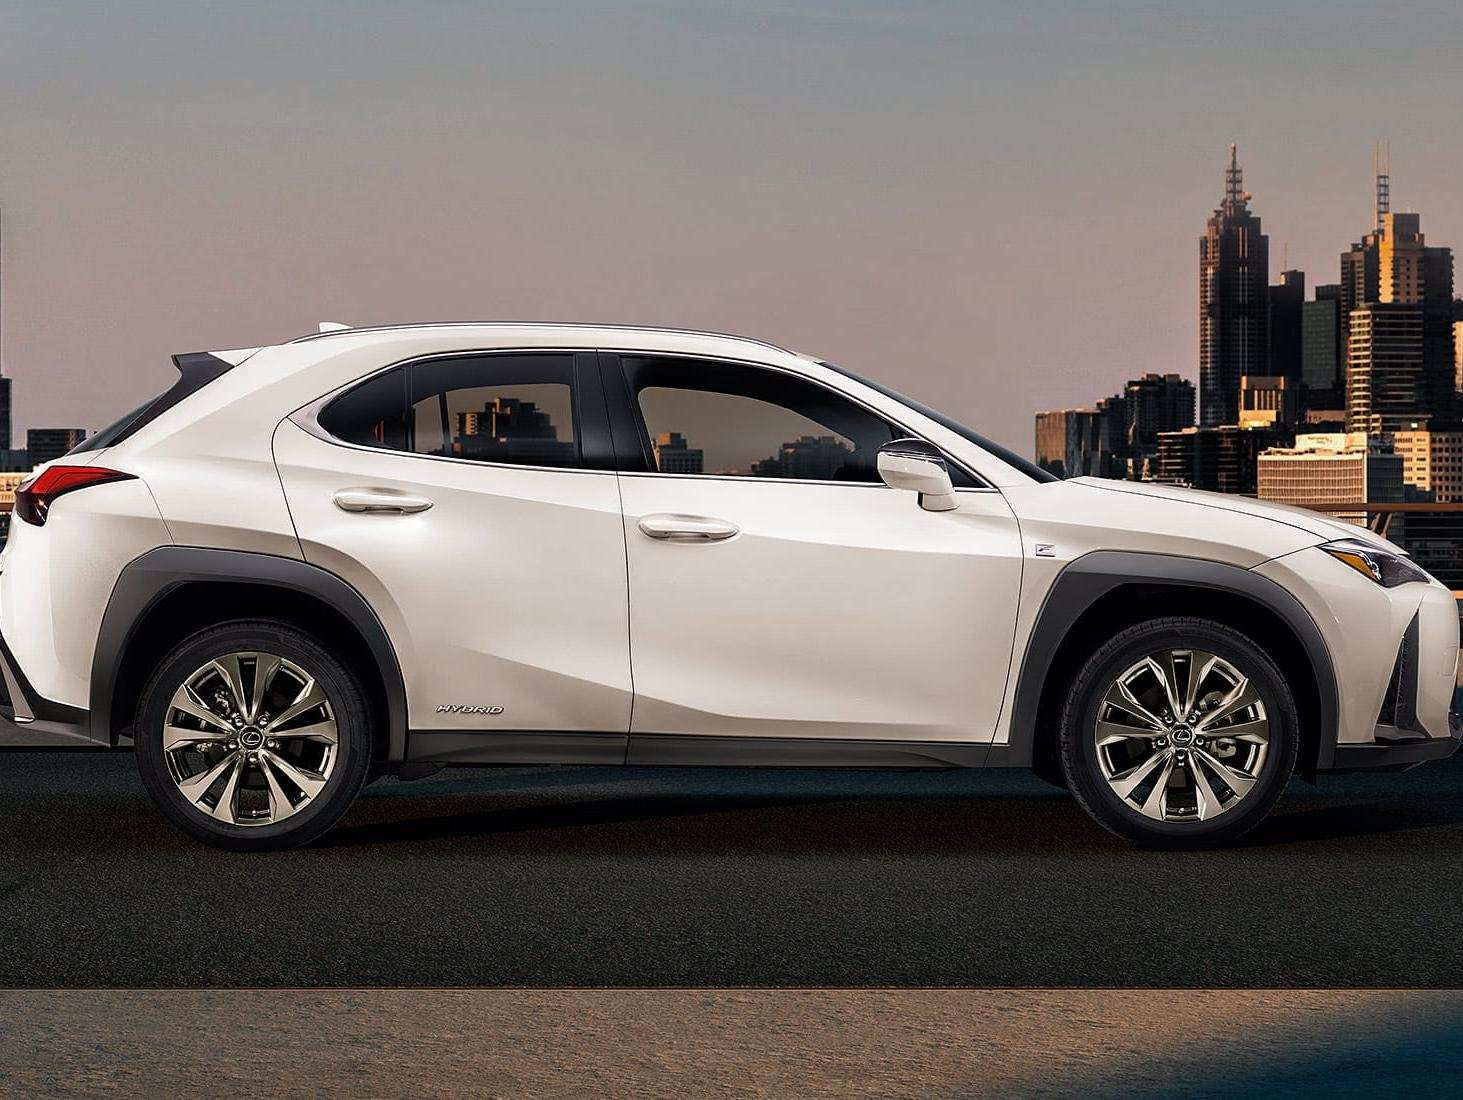 49 All New When Lexus 2019 Come Out Specs and Review by When Lexus 2019 Come Out